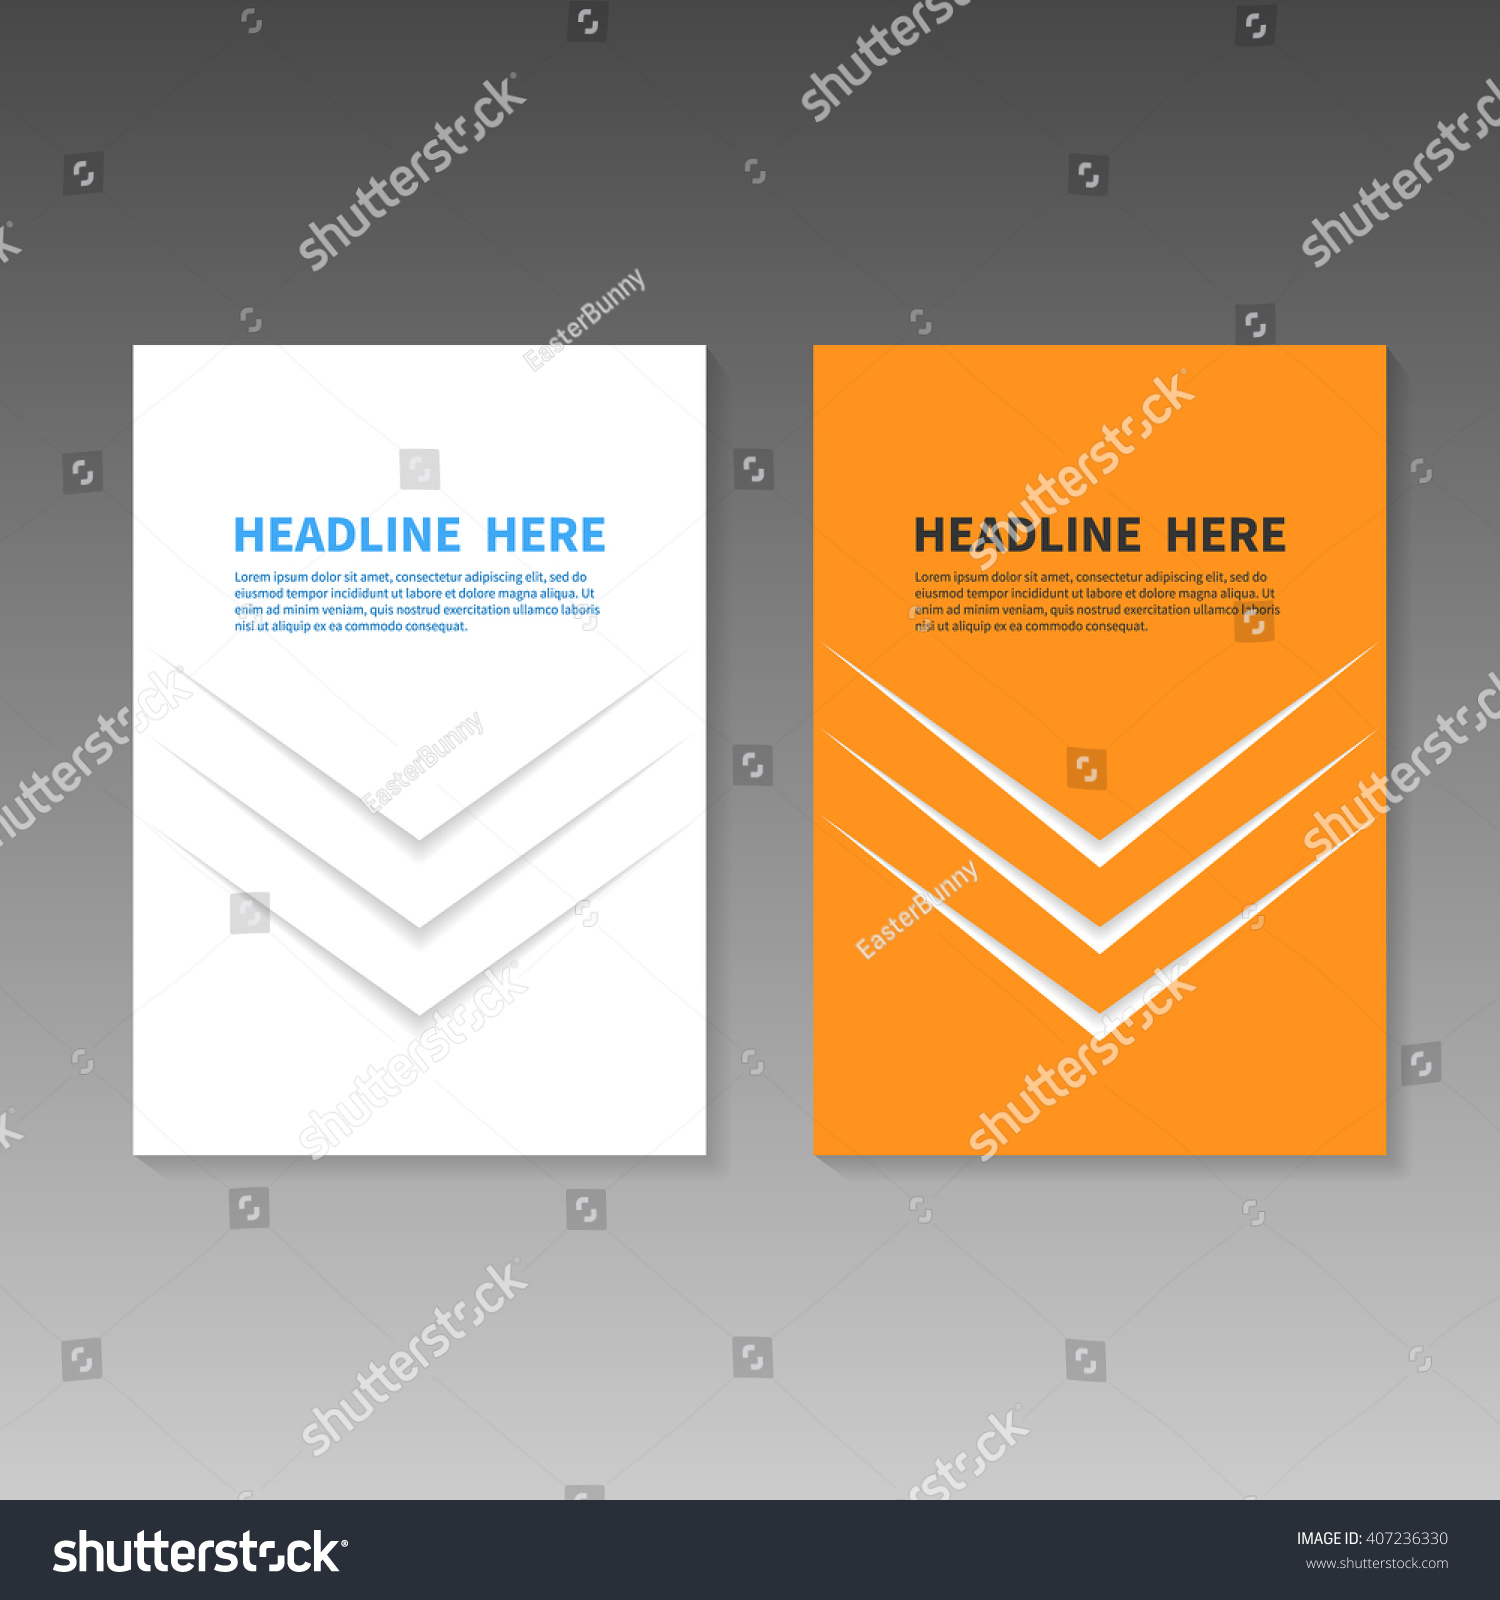 book title page business report booklet stock vector  book title page business report or booklet cover brochure layout template poster